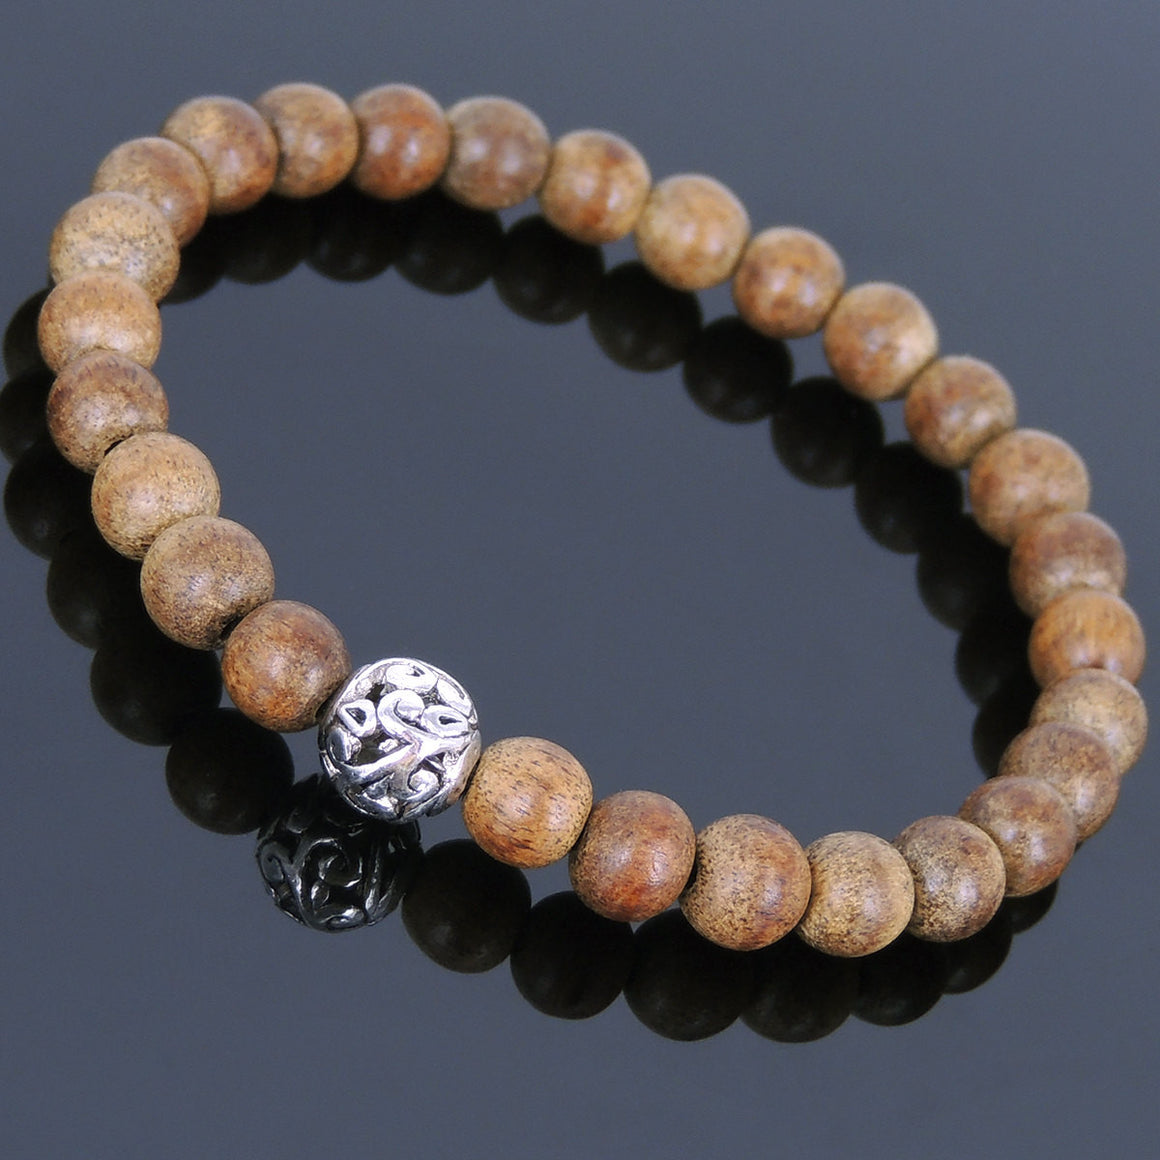 Meditation Agarwood Bracelet with Tibetan Silver Meditation Bead - Handmade by Gem & Silver AWB013